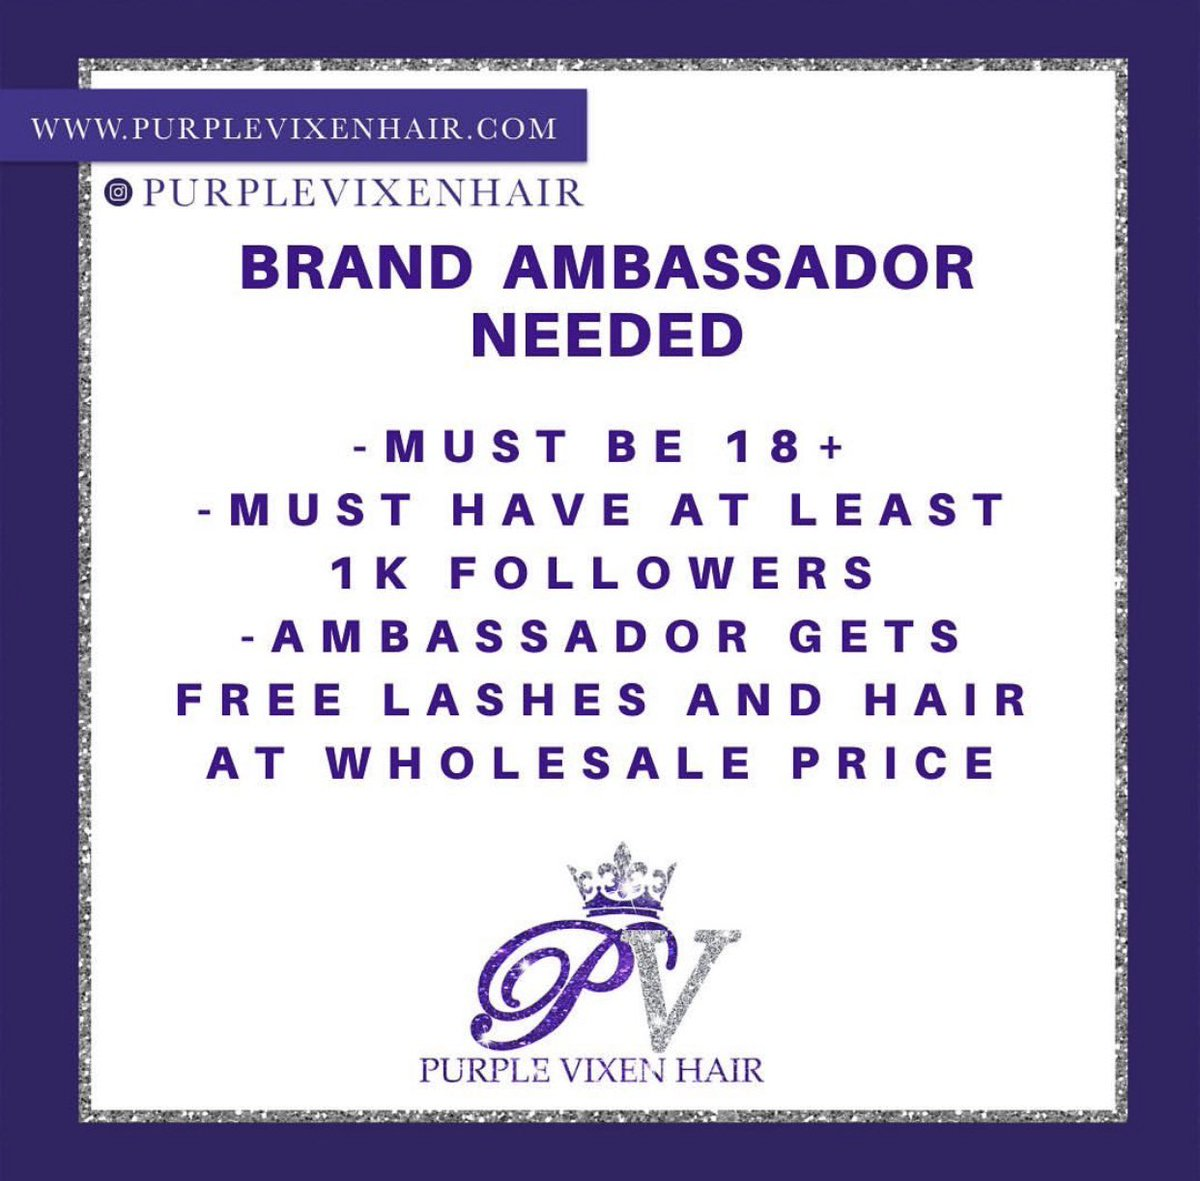 #BrandAmbassador #ambassadorneeded #beauty #fashion #hairextensions #hair #purplevixenhair #InfluencerMarketing #Influencer #wigs #laceclosure #frontal #bundlespic.twitter.com/JJugIELeD2